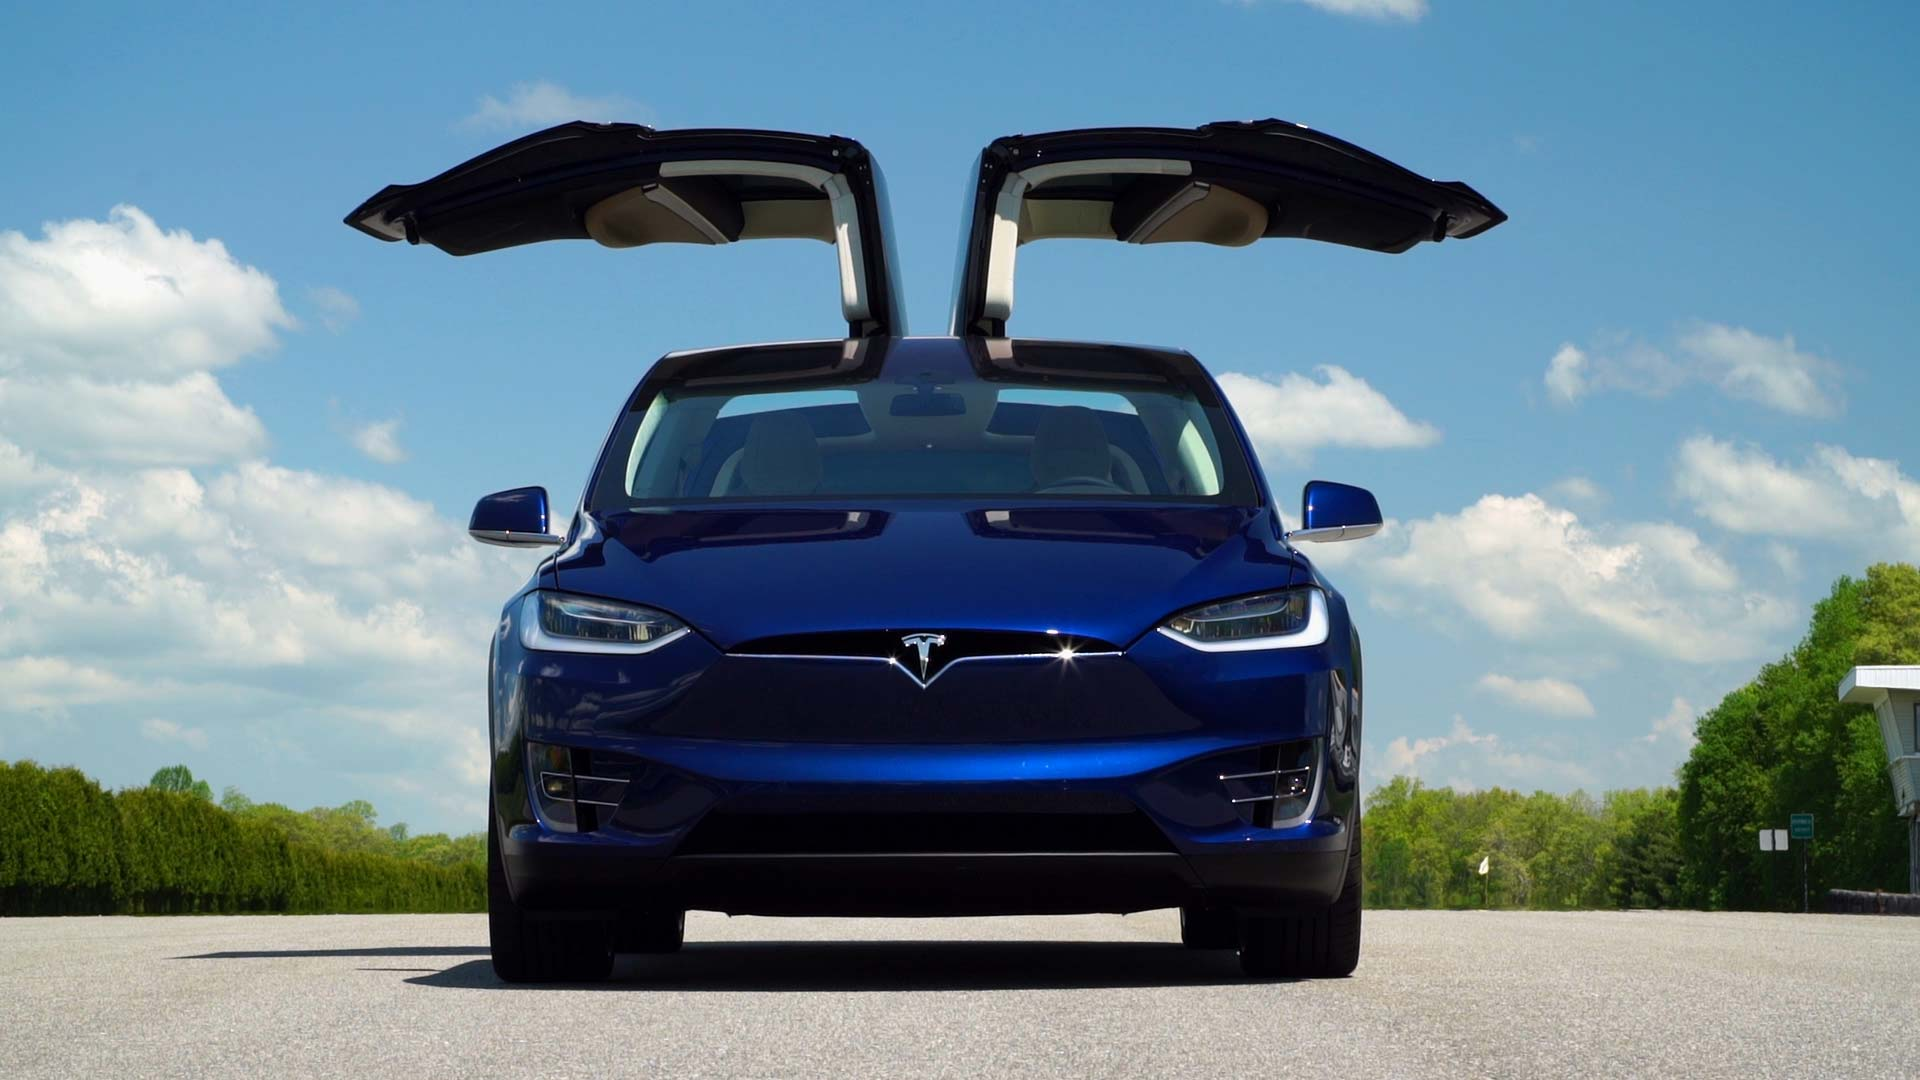 Ratings On Mattresses >> 'Talking Cars' Video Podcast Looks at Tesla Model X, 2017 ...